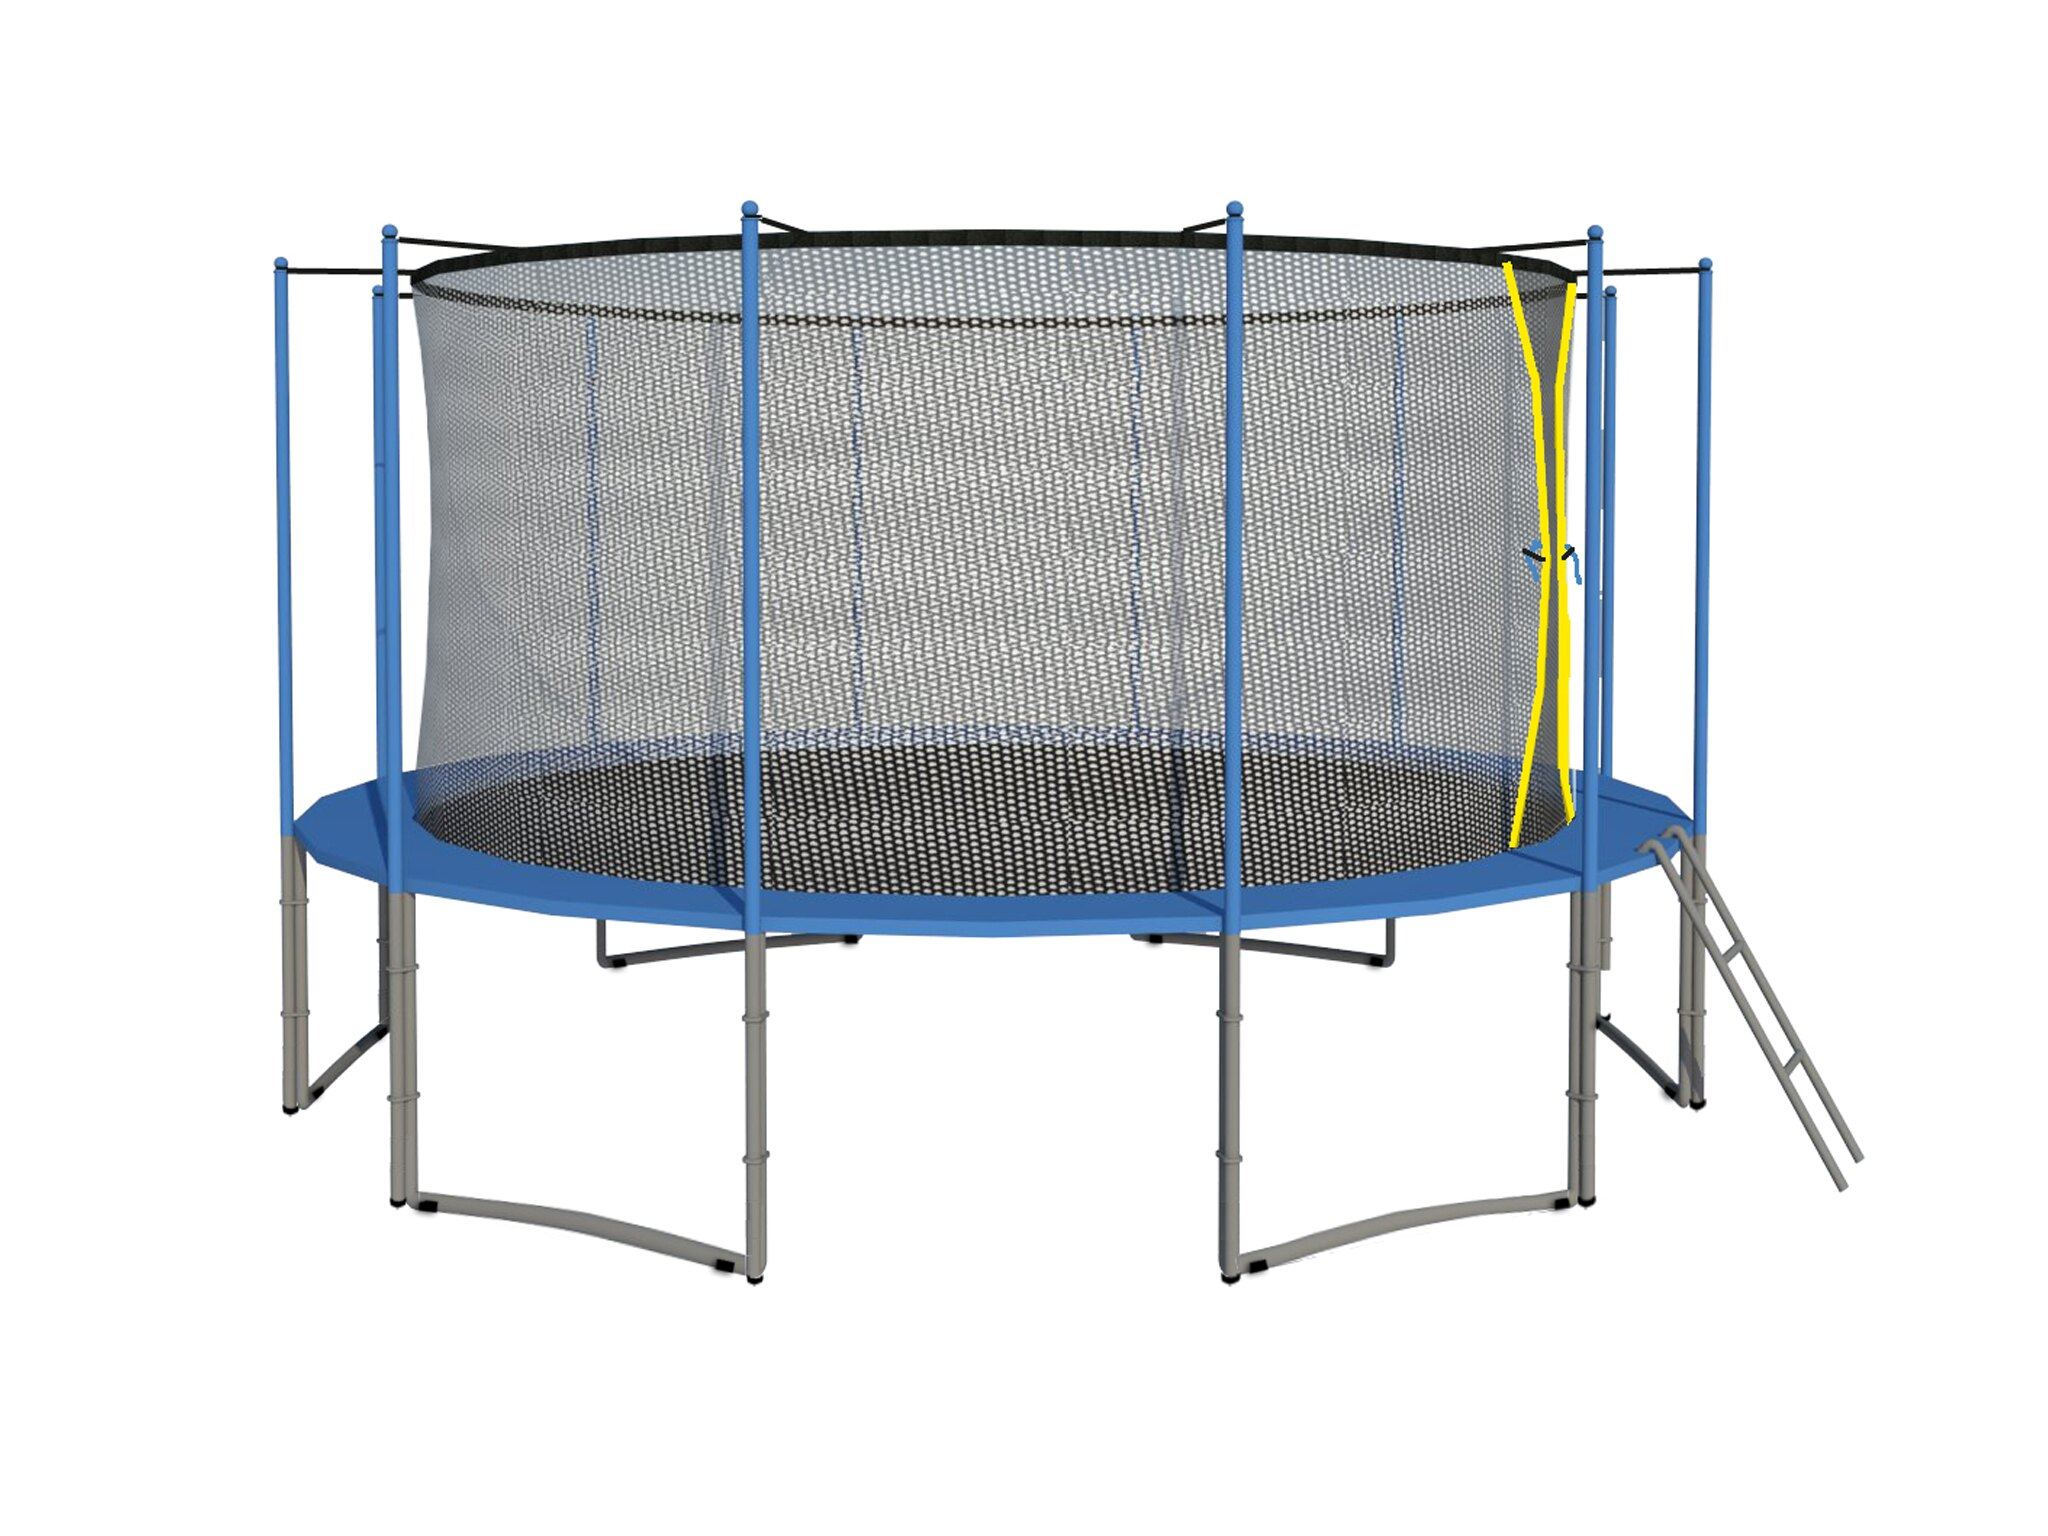 ExacMe 16 FT Inner Trampoline w/ Enclosure Net Ladder ALL-IN-ONE COMBO C16 0